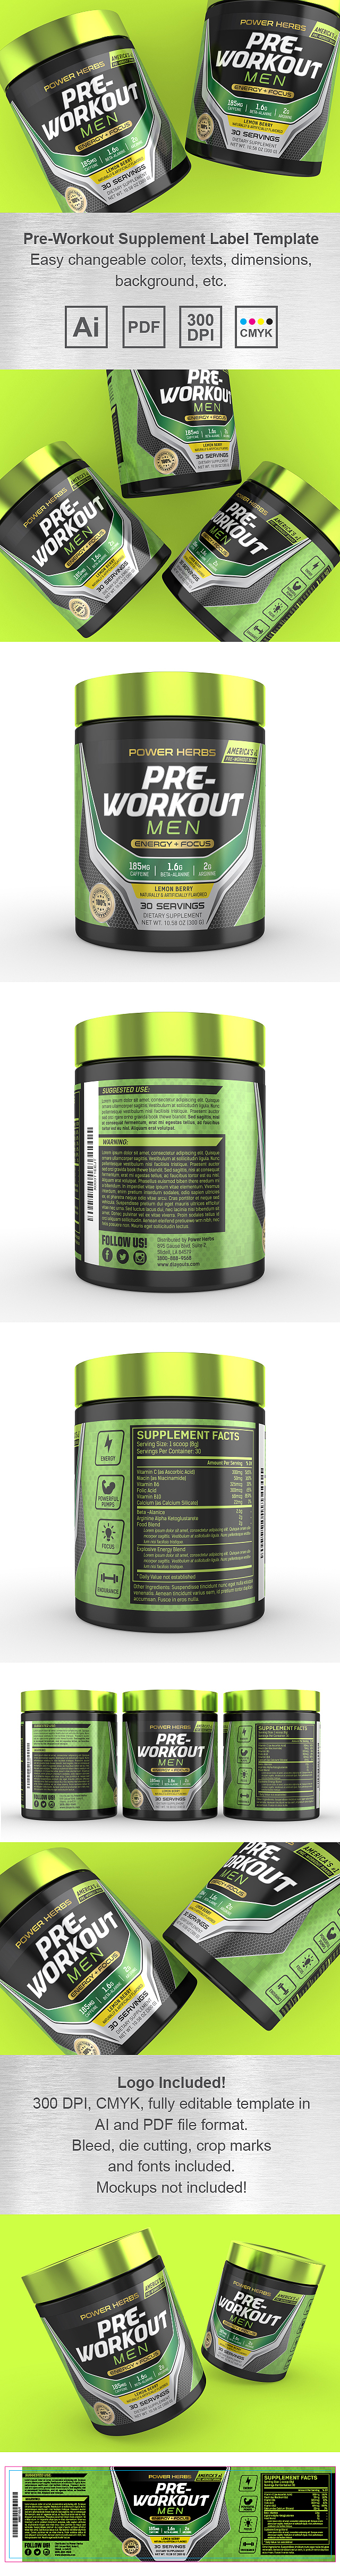 Pre Workout for Men Supplement Label Template